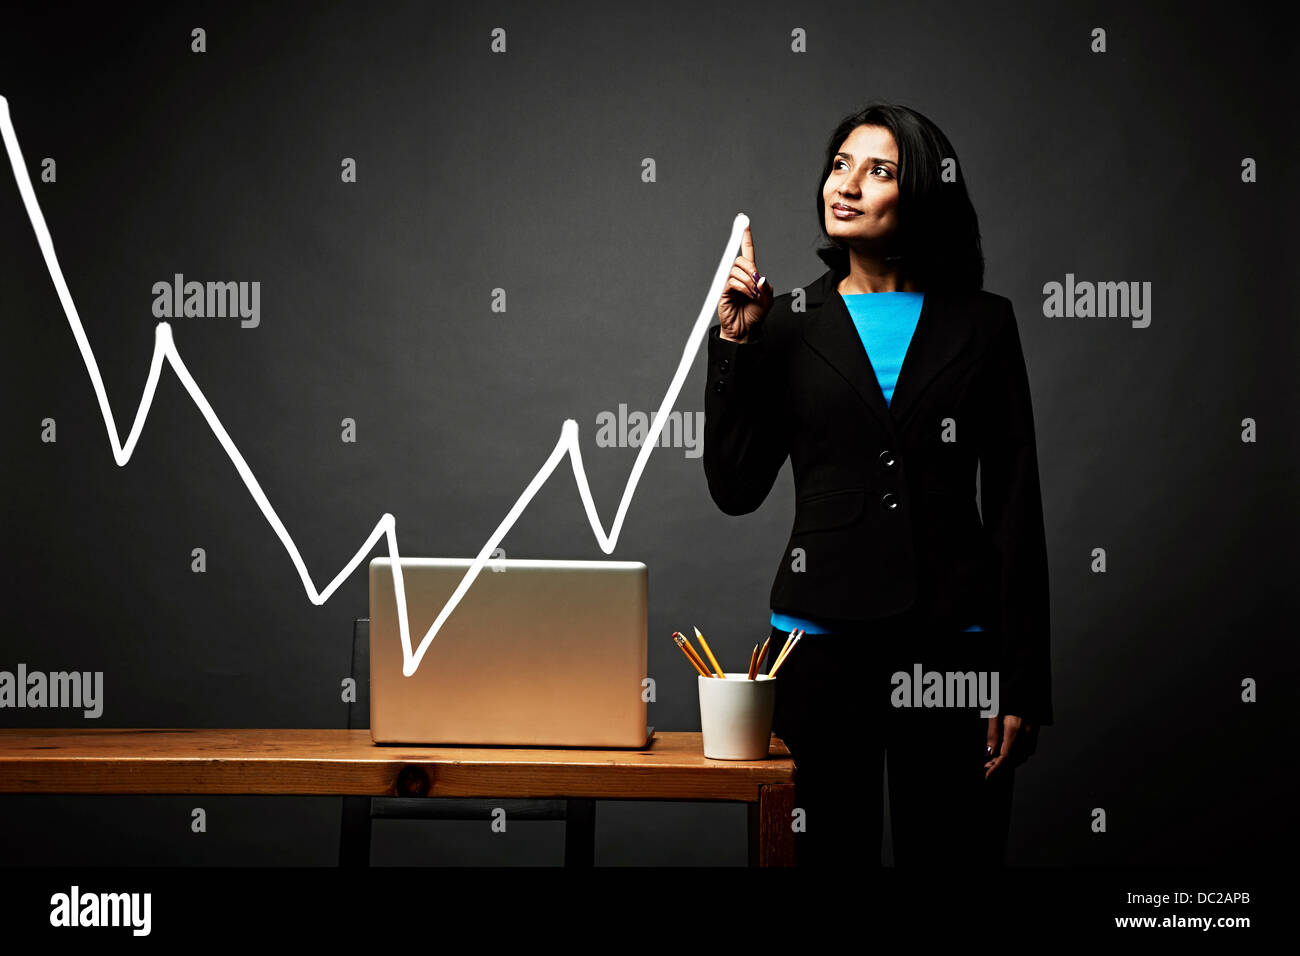 Woman drawing line graph - Stock Image